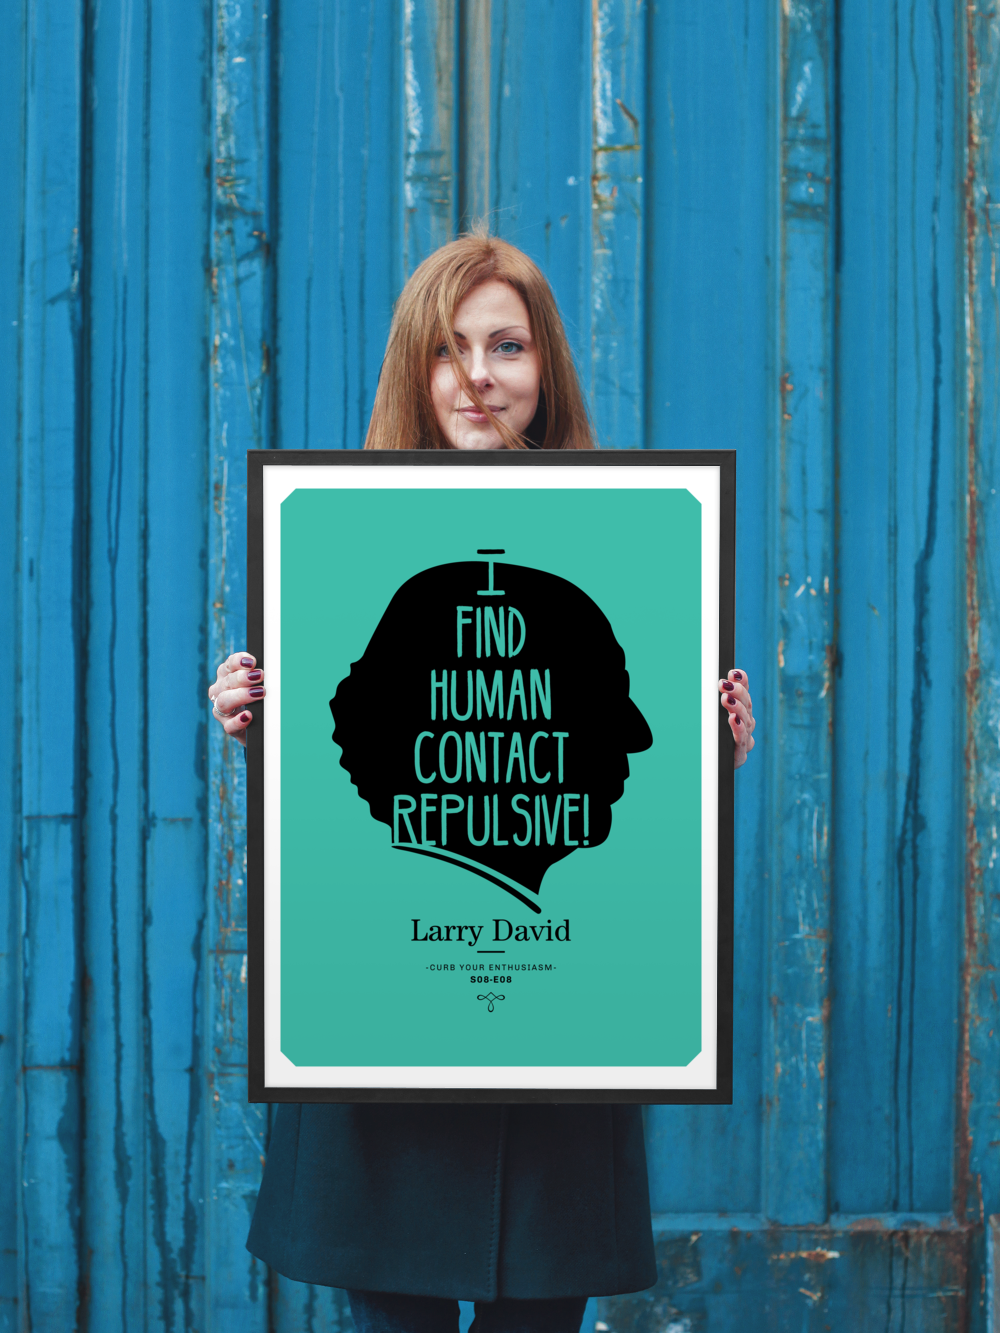 Larry David Quote Prints Curb Your Enthusiasm Funny Quotes Etsy Com Uk Shop Larrydavidposters Image By Larry David Posters Larry David Quotes Larry David Quote Prints